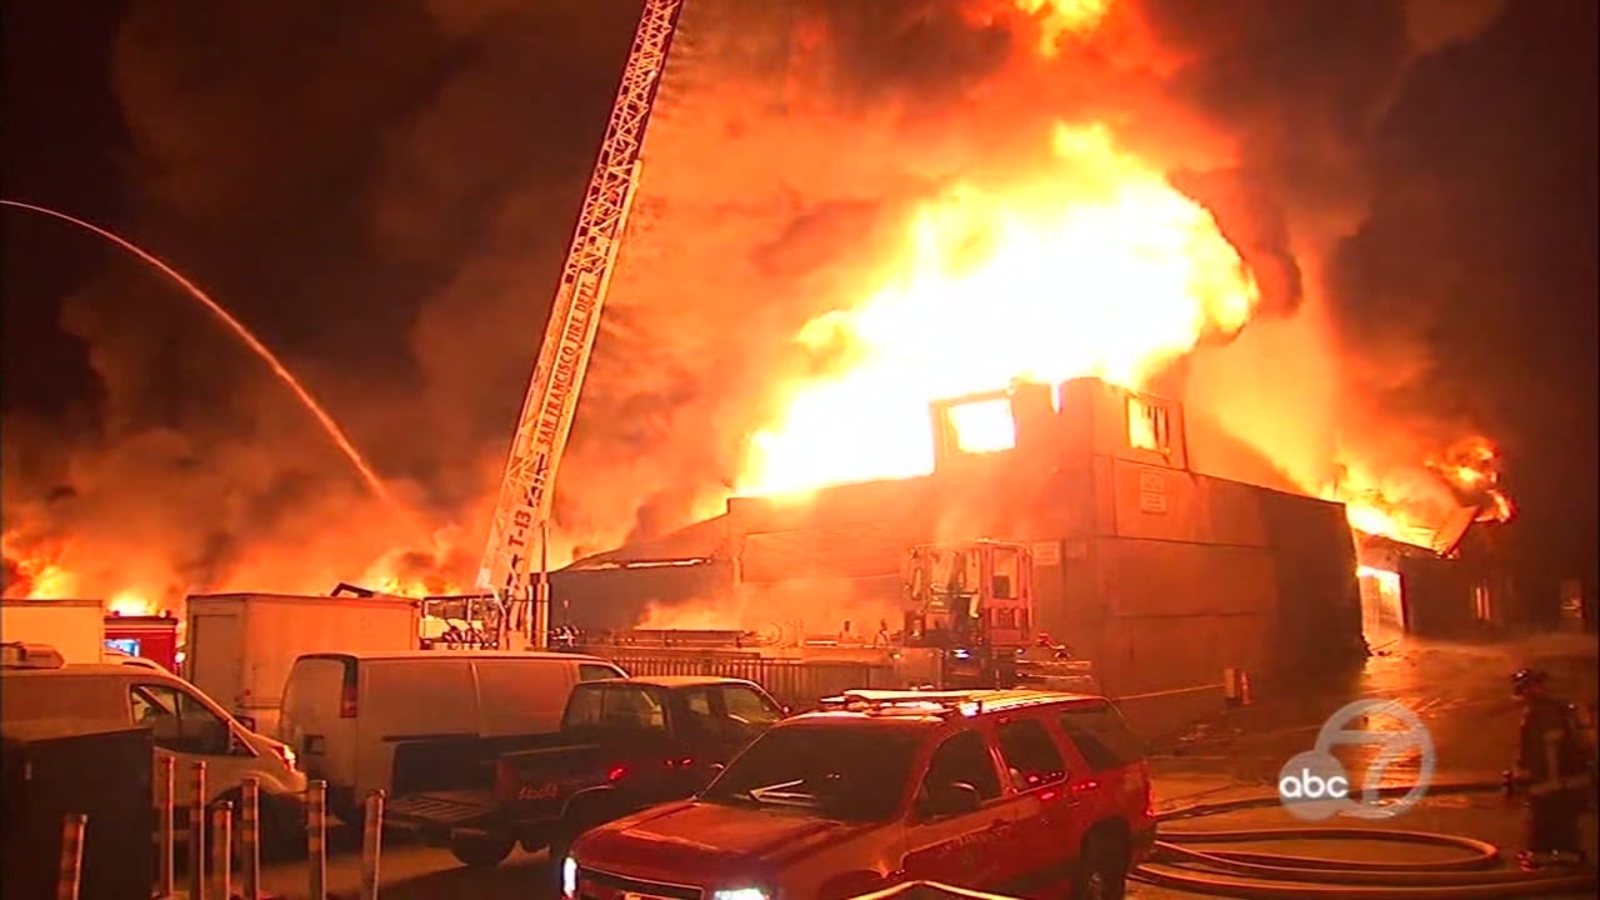 'Everything is gone': Pier 45 fire puts 2020 crab season in jeopardy, millions in fishing equipment destroyed